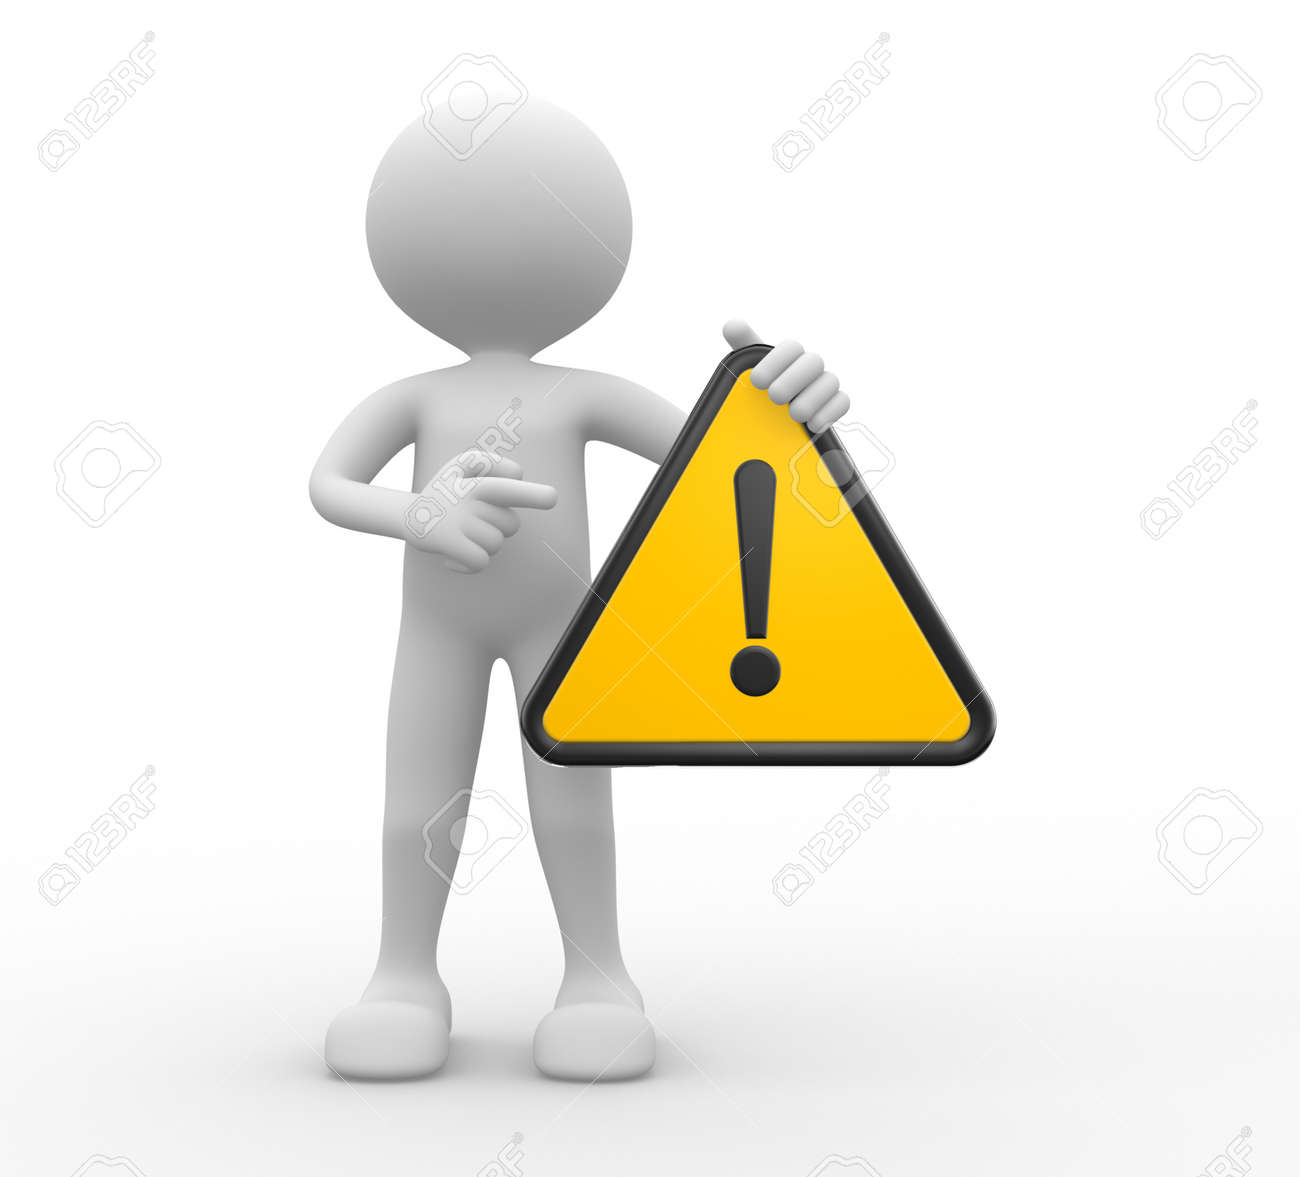 3d people - man, person with warning sign Stock Photo - 20611104